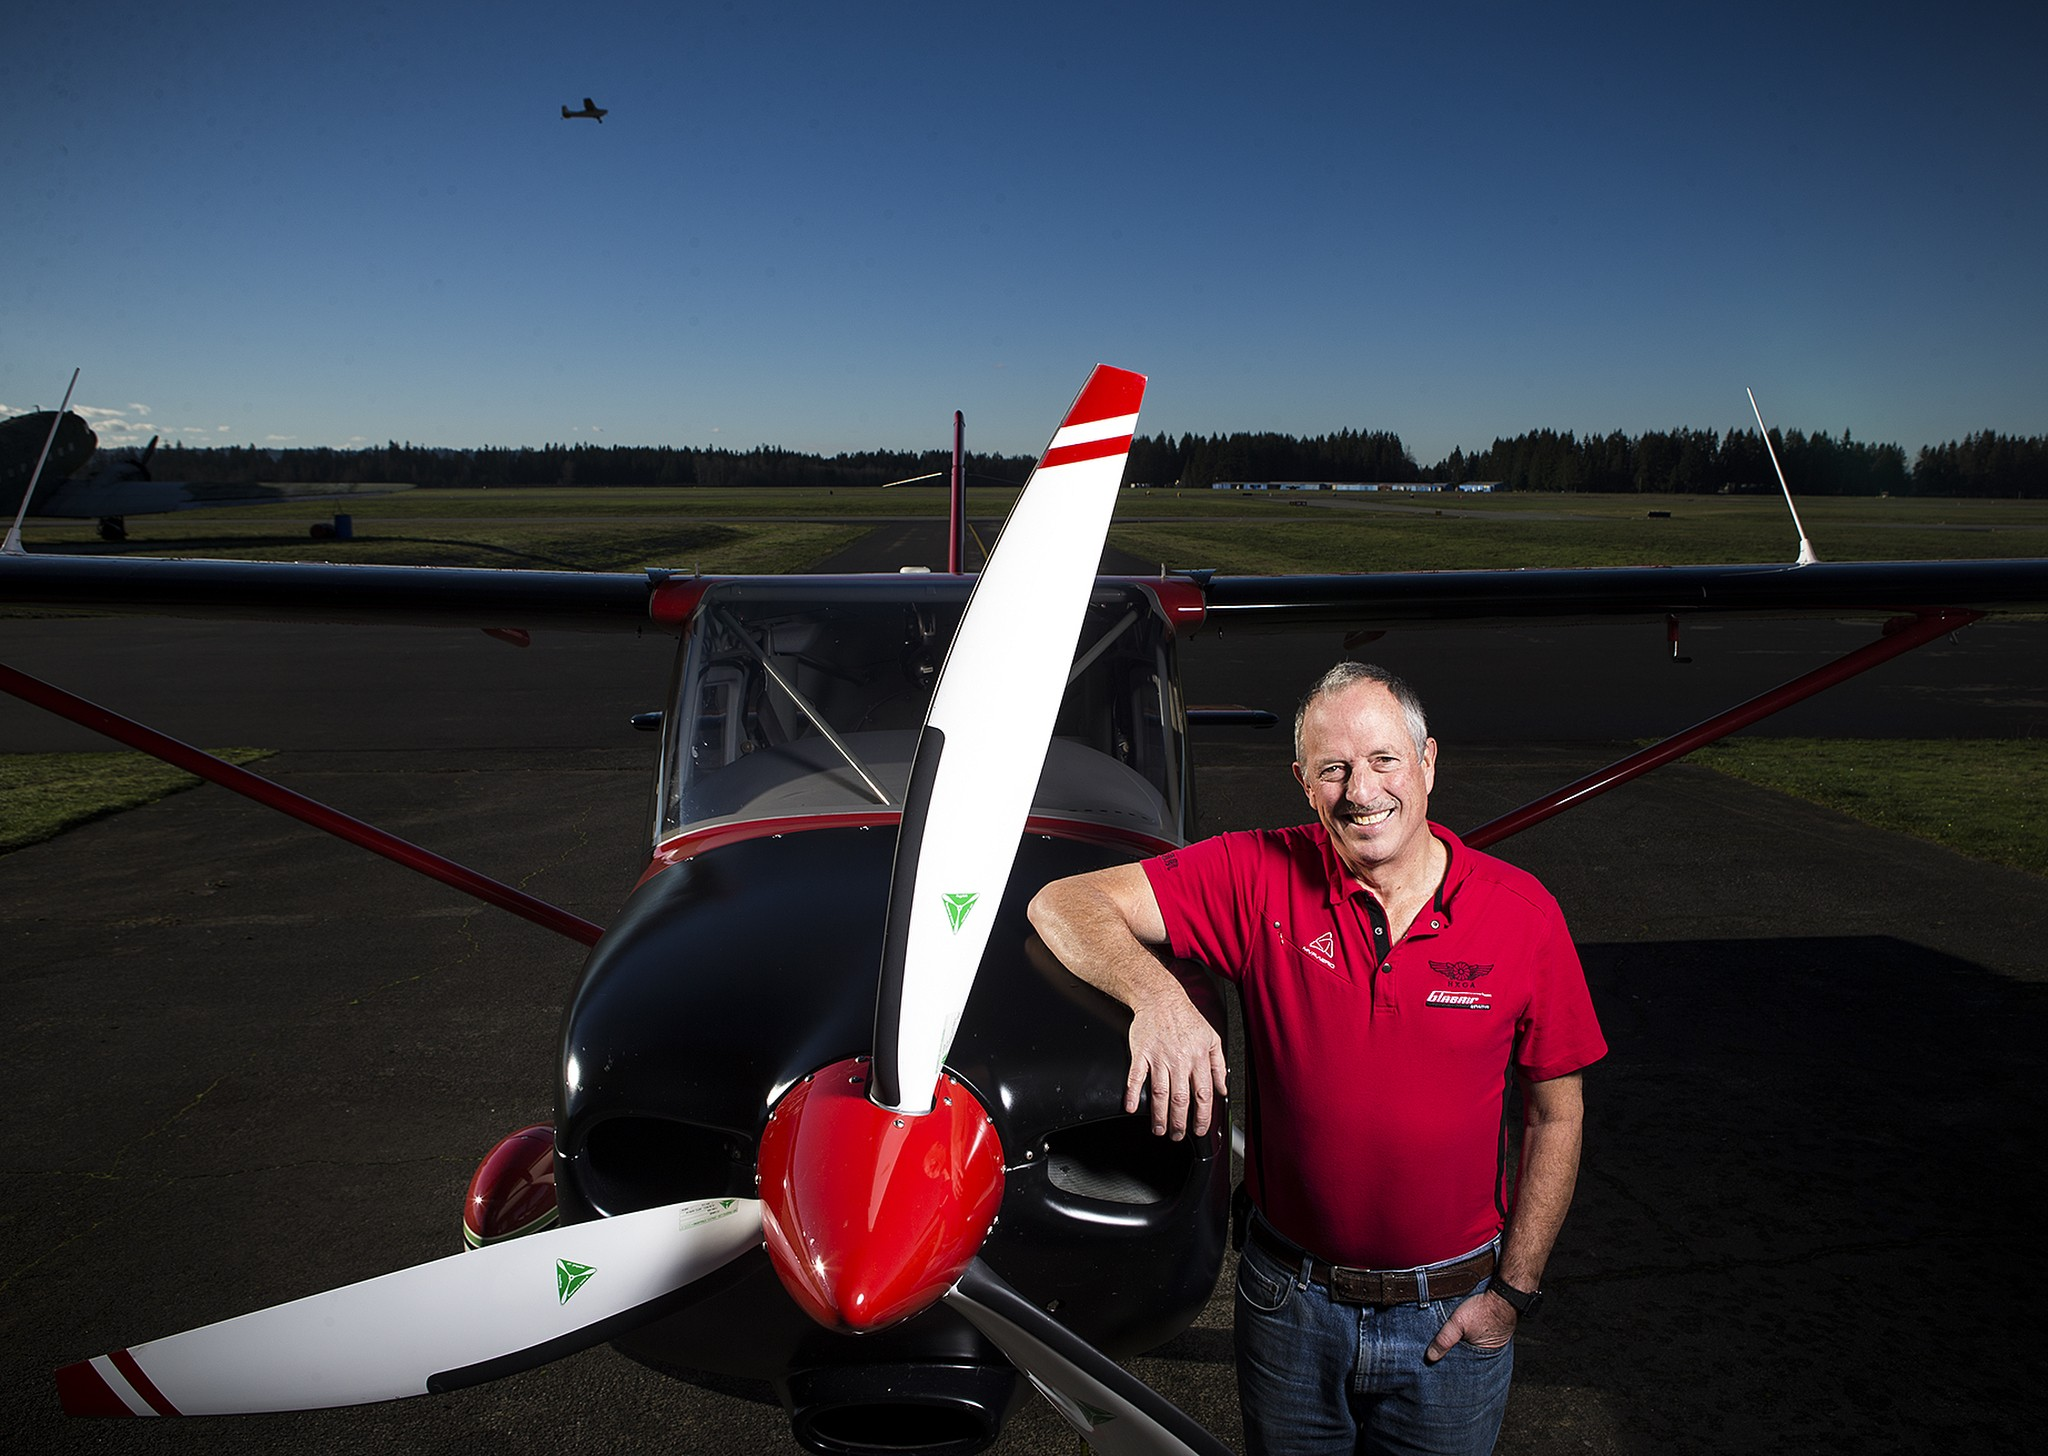 Ted Setzer, of Granite Falls, who recently retired from airplane maker Glasair, is being honored as the Arlington Airport Person of the Year. (Photo: Ian Terry / The Herald)